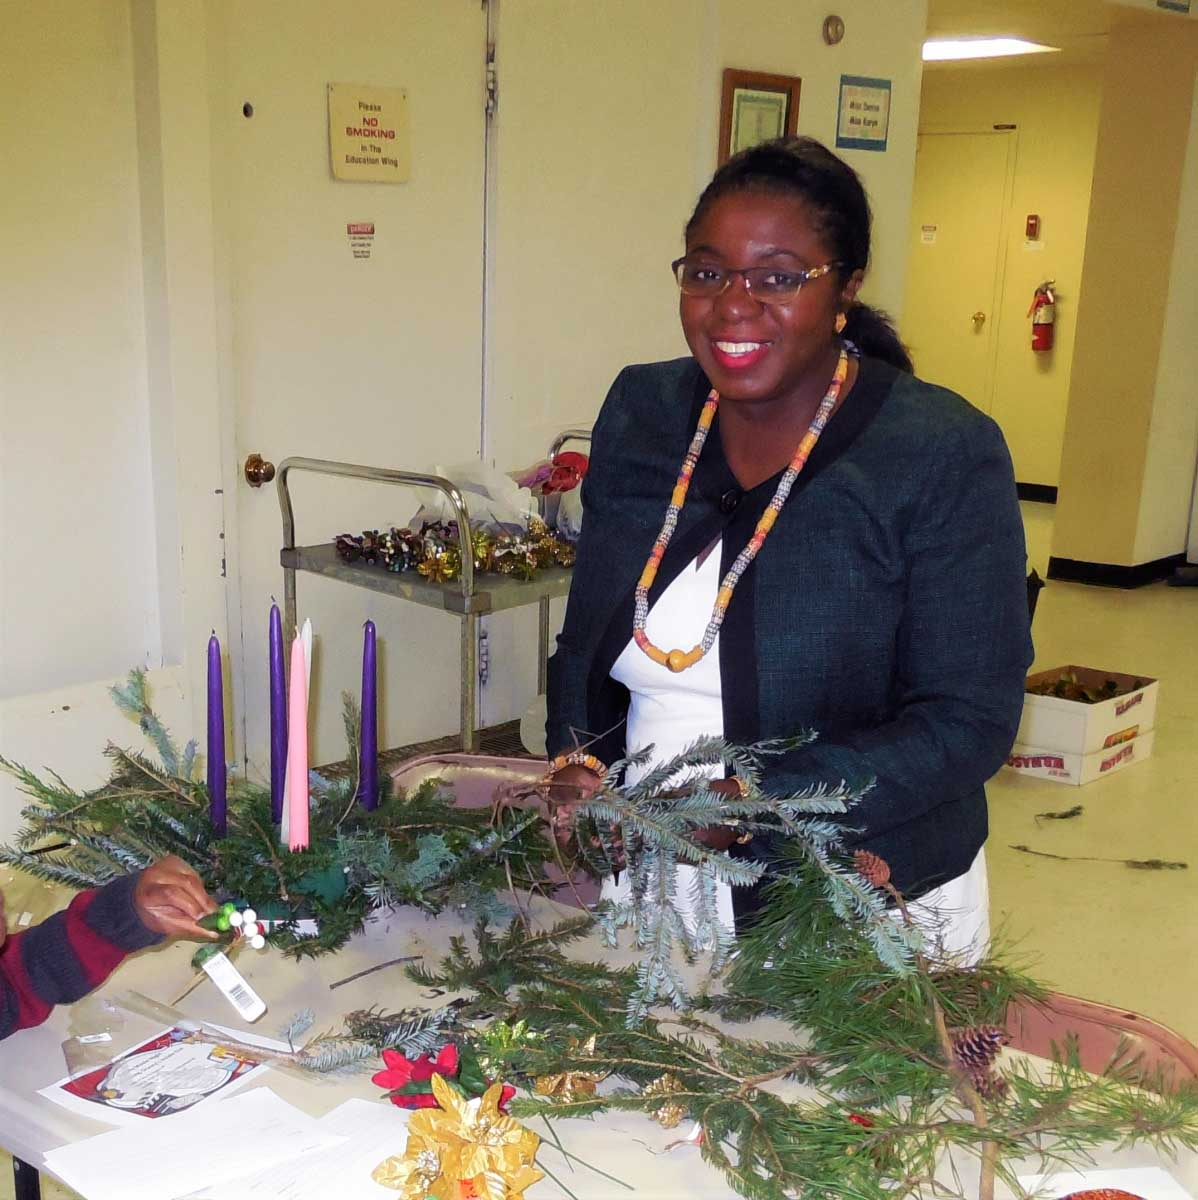 A Wesley Grove church member makes an Advent wreath during the annual Advent Wreath Workshop.